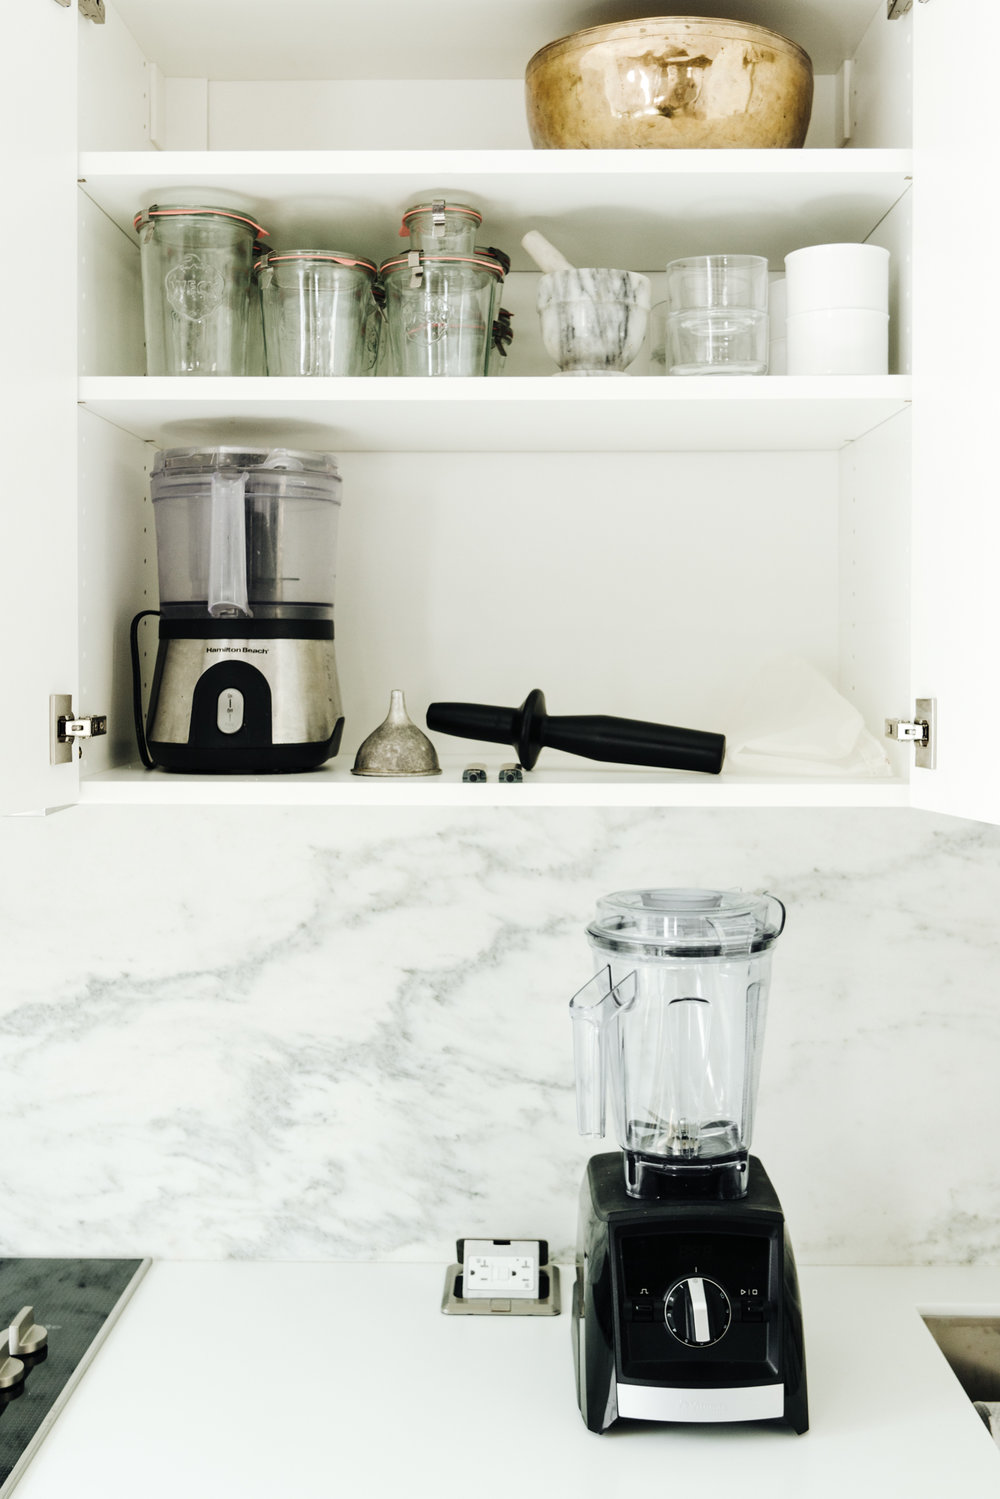 5 tips for making your kitchen organized and efficient, coffee cupboard